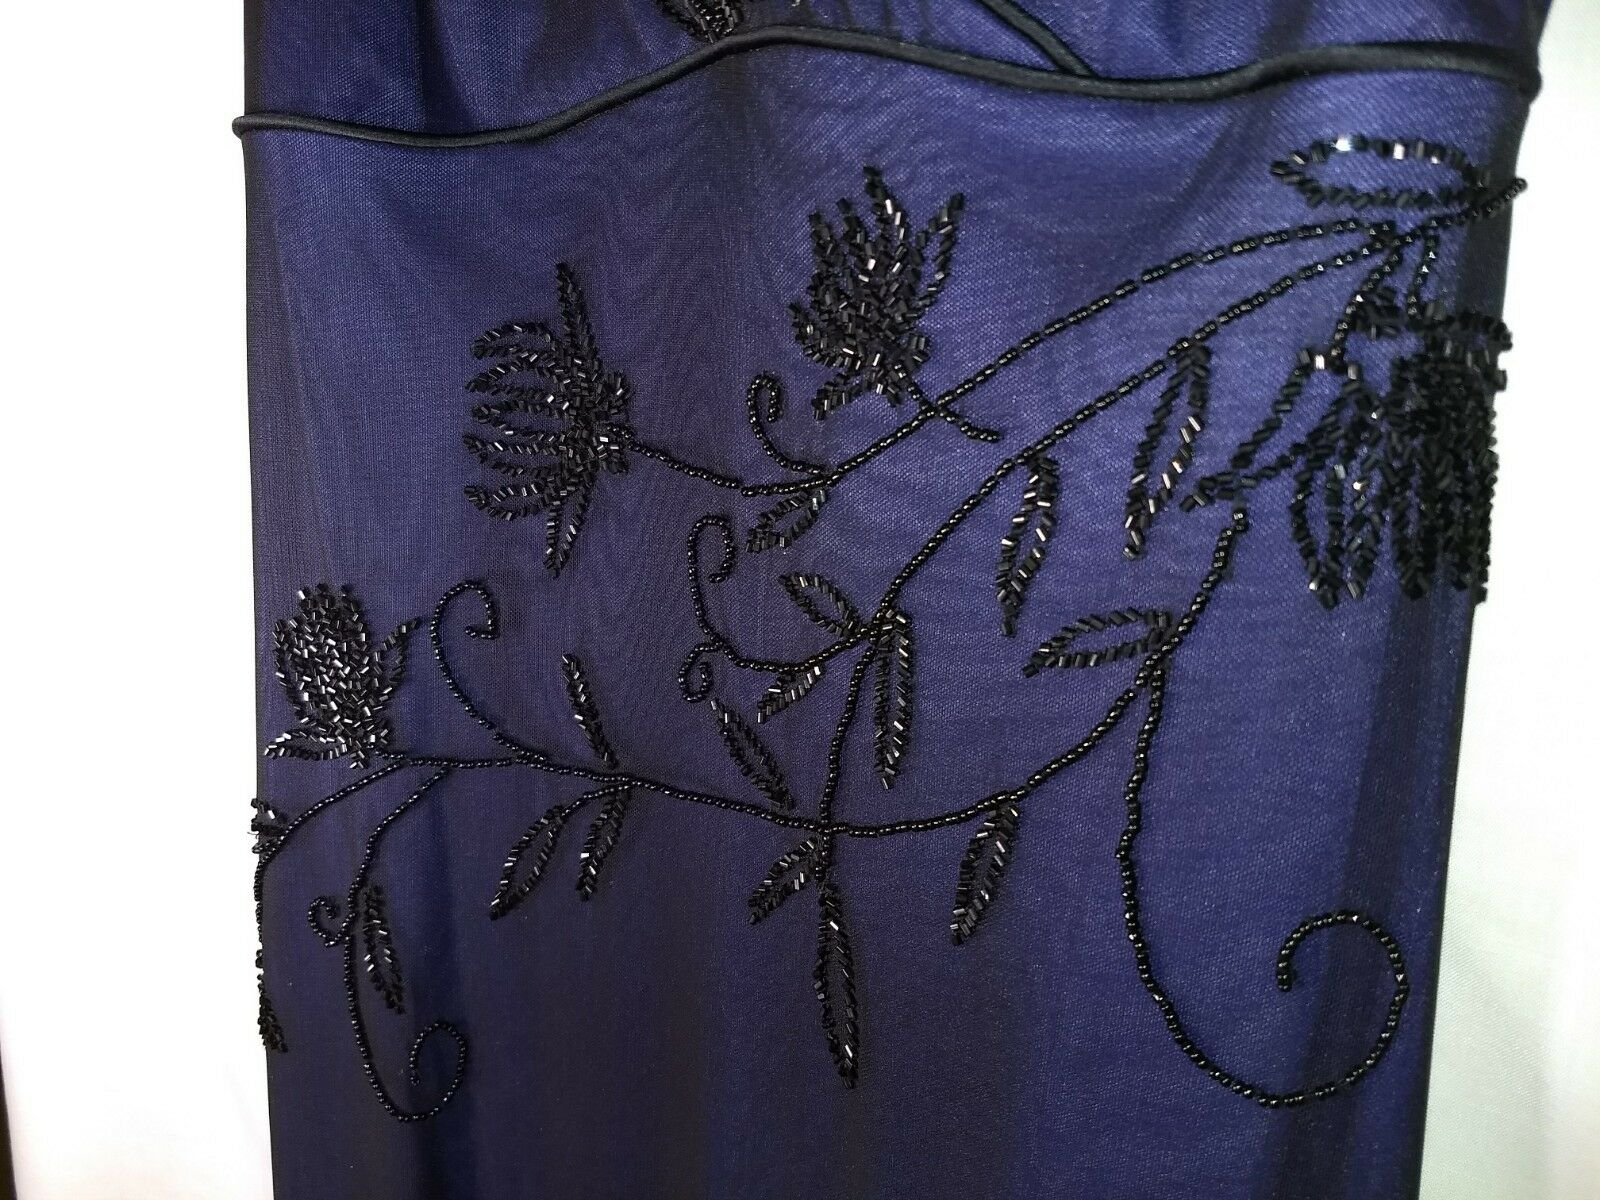 Rimini by Shaw deep deep deep purple, beaded floor-length gown, size 6. Excellent cond. 023647